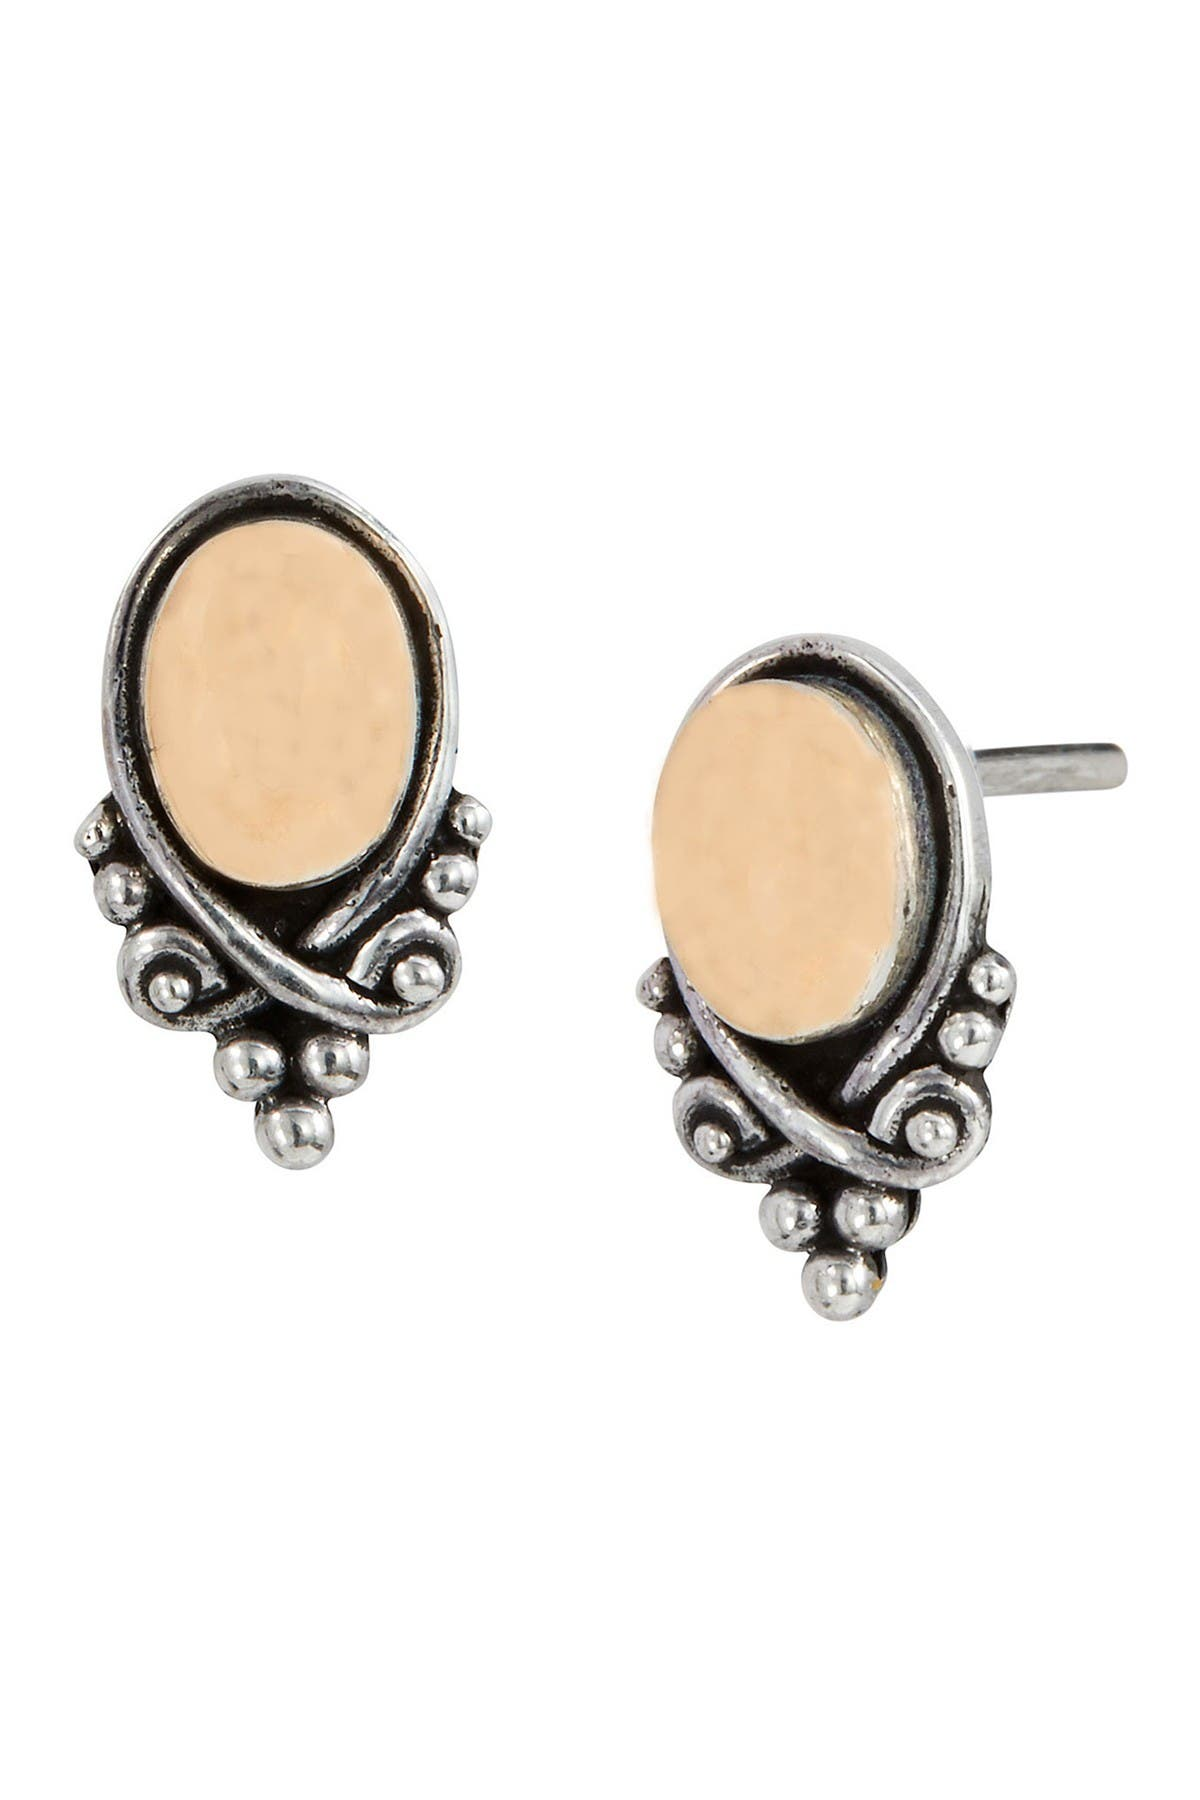 Image of Savvy Cie Two-Tone 18K Gold & Sterling Silver Oval Stud Earrings